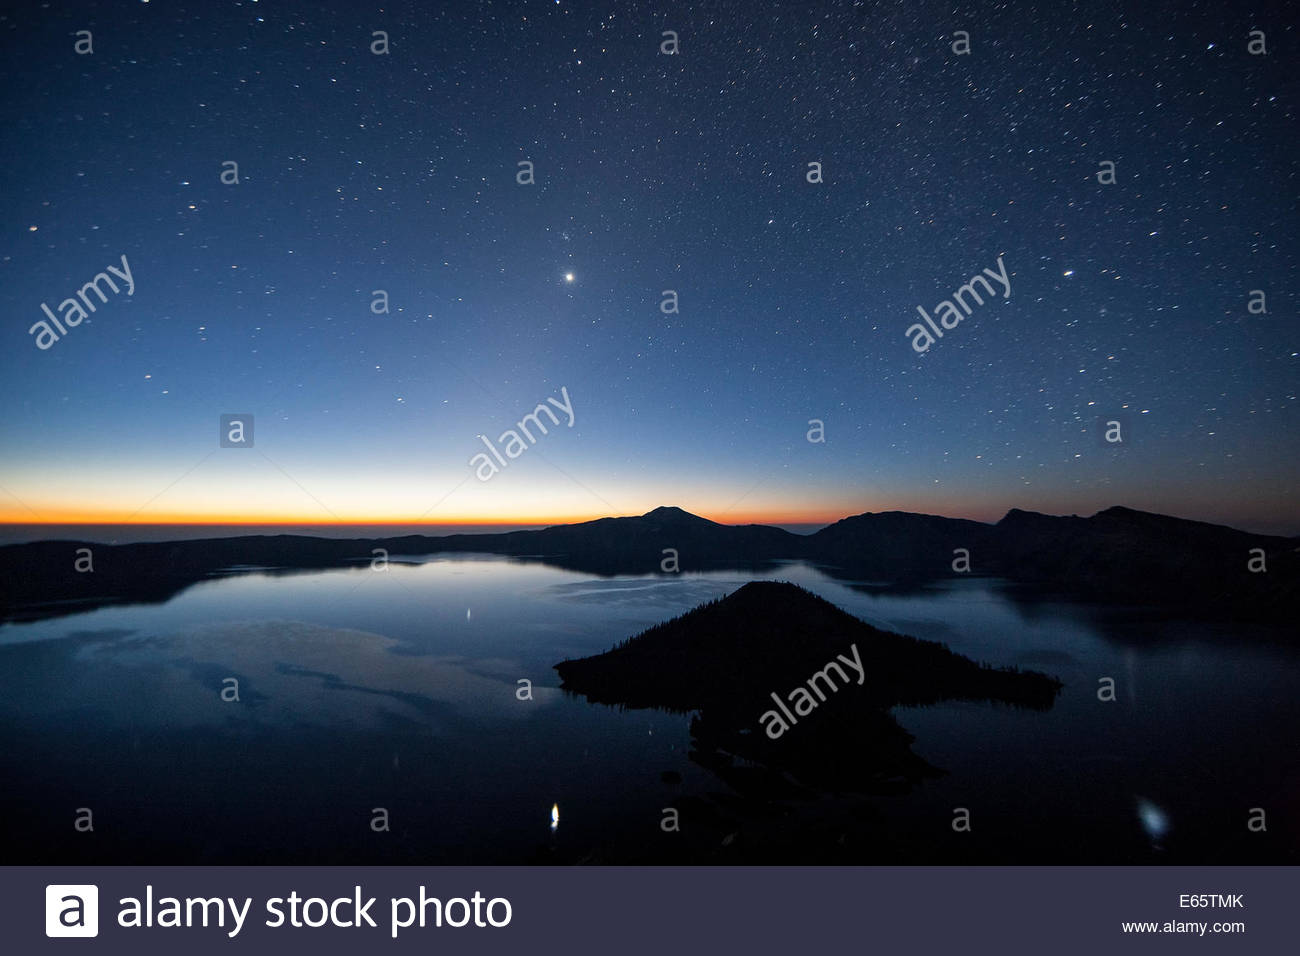 Thousands of stars and the planet Venus shine over Crater Lake in Oregon just before sunrise. Stock Photo